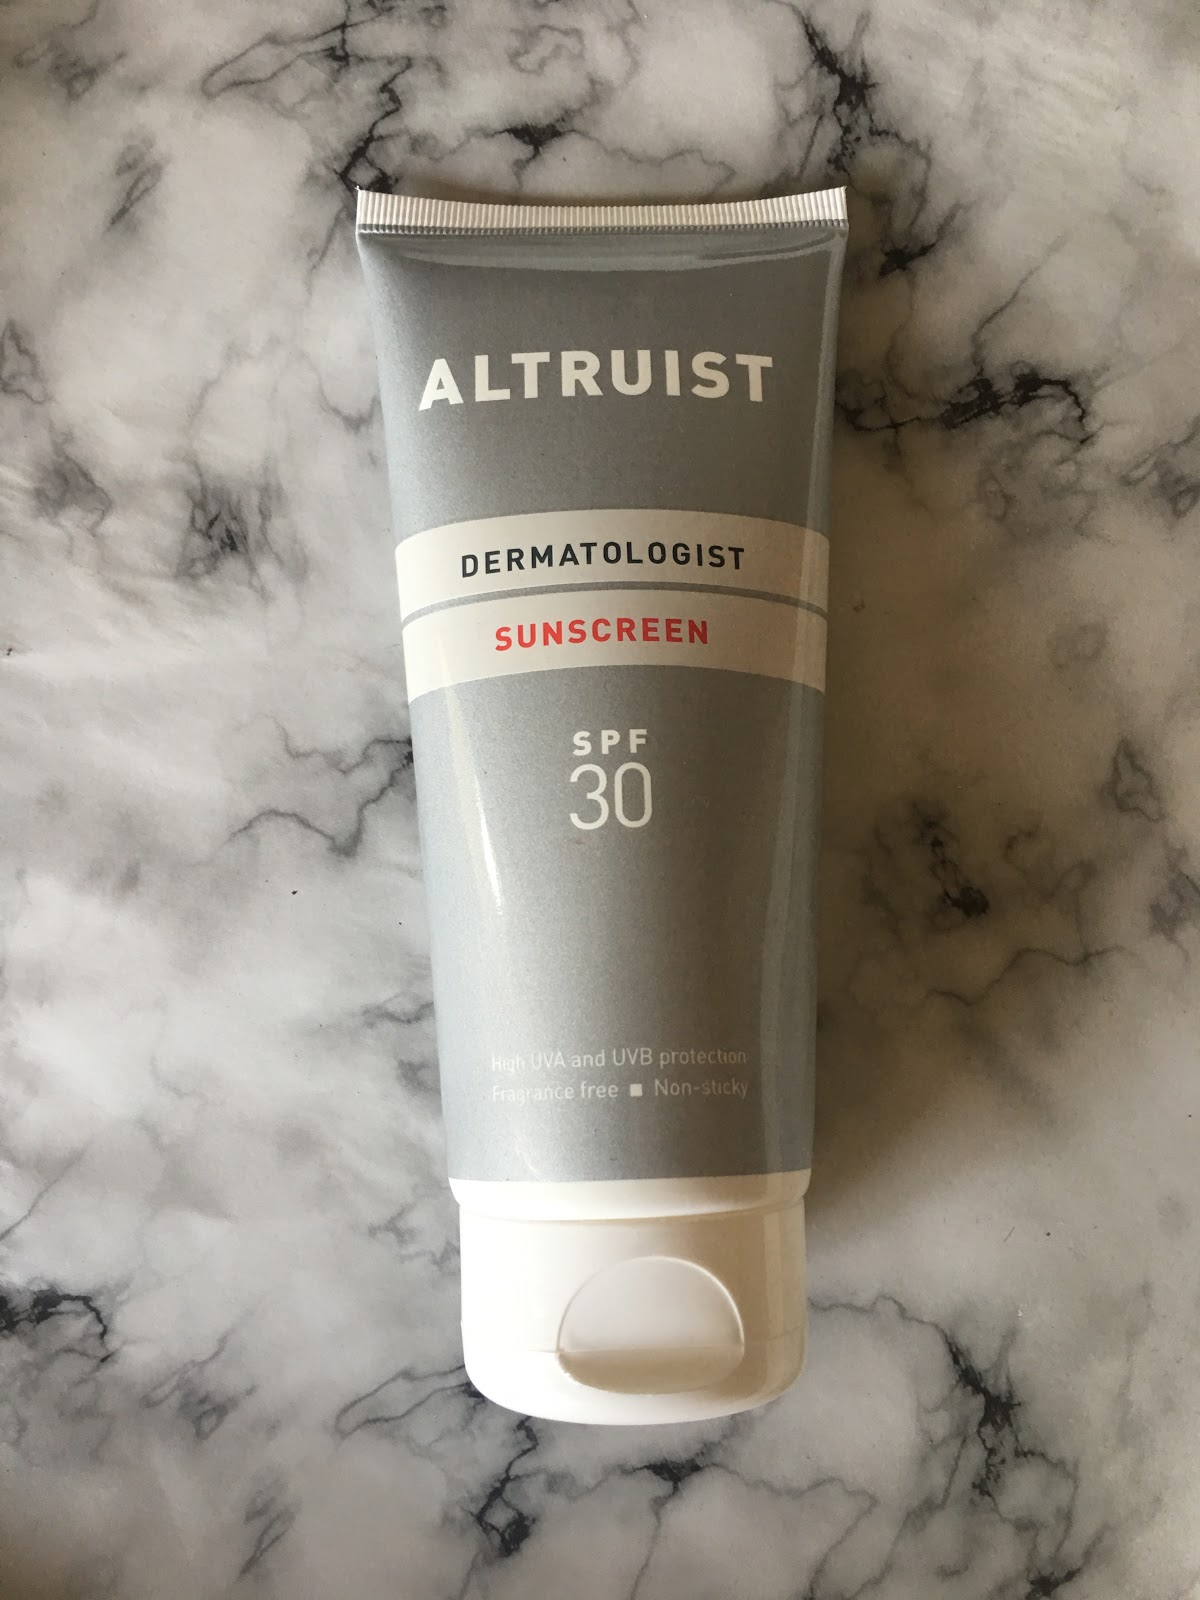 altruist dermatologist sunscreen factor 30 first